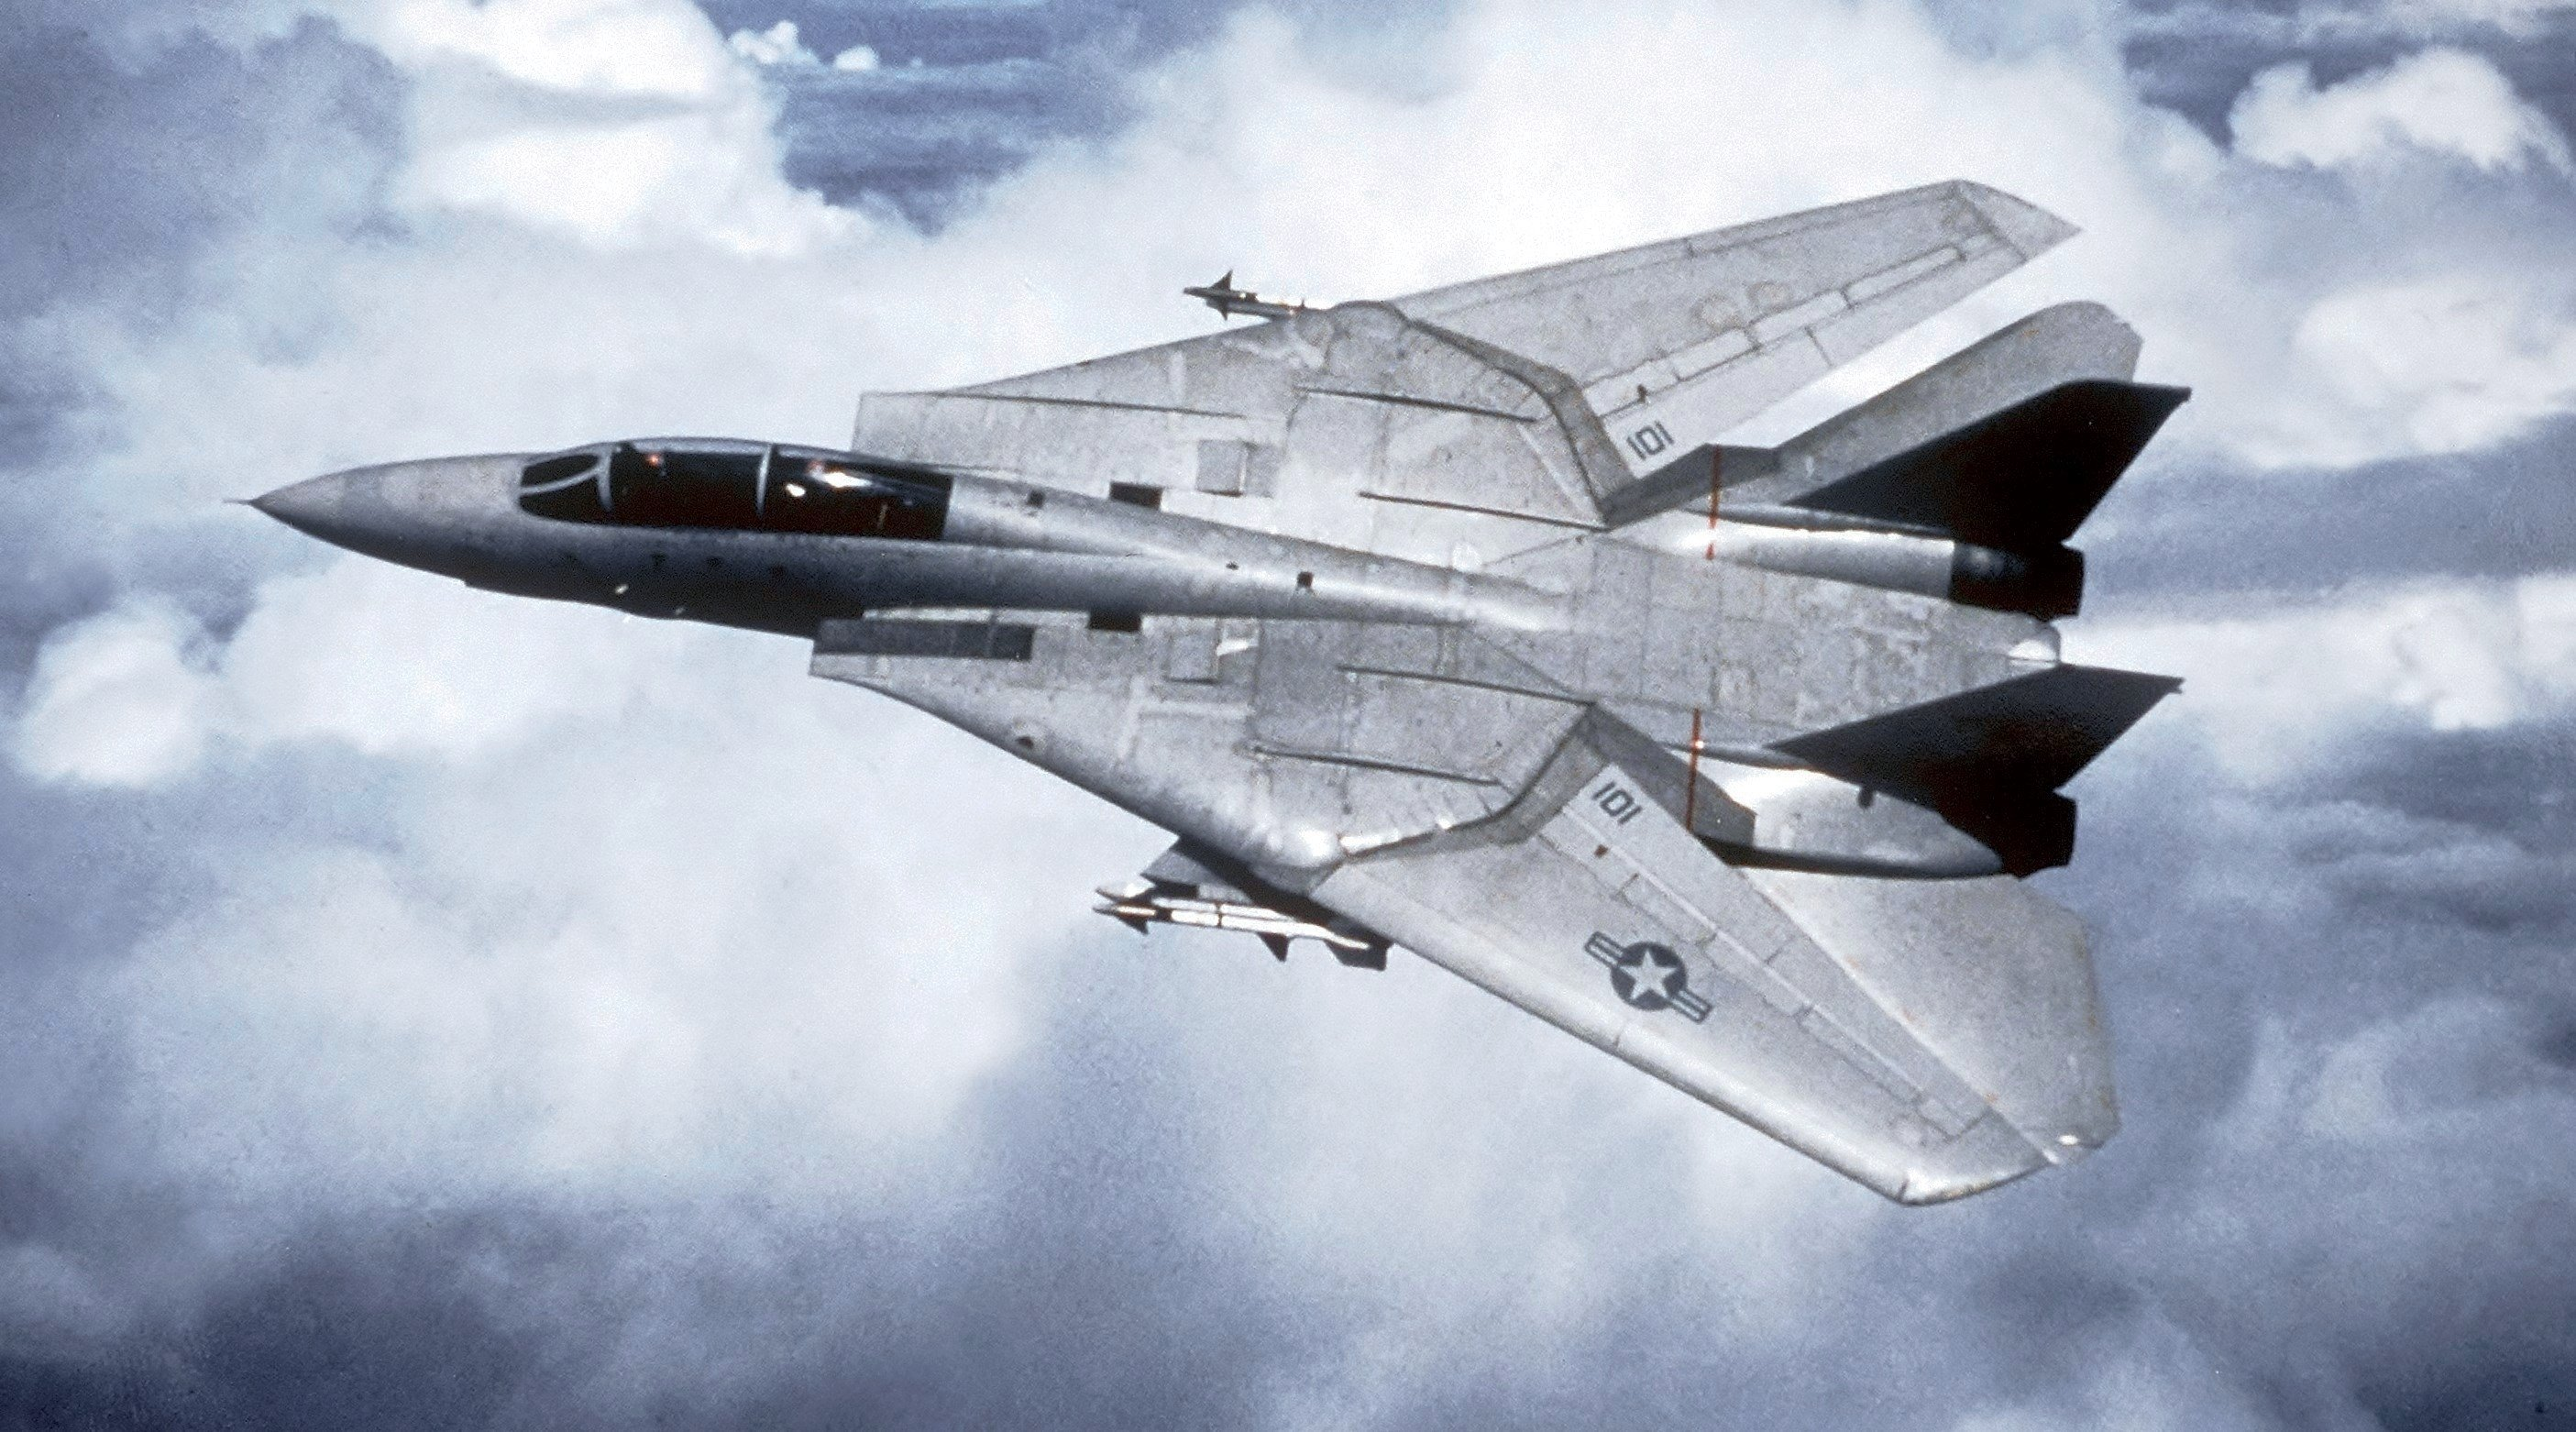 F-14 Tomcat: The Navy Fighter It Wishes It Could Bring